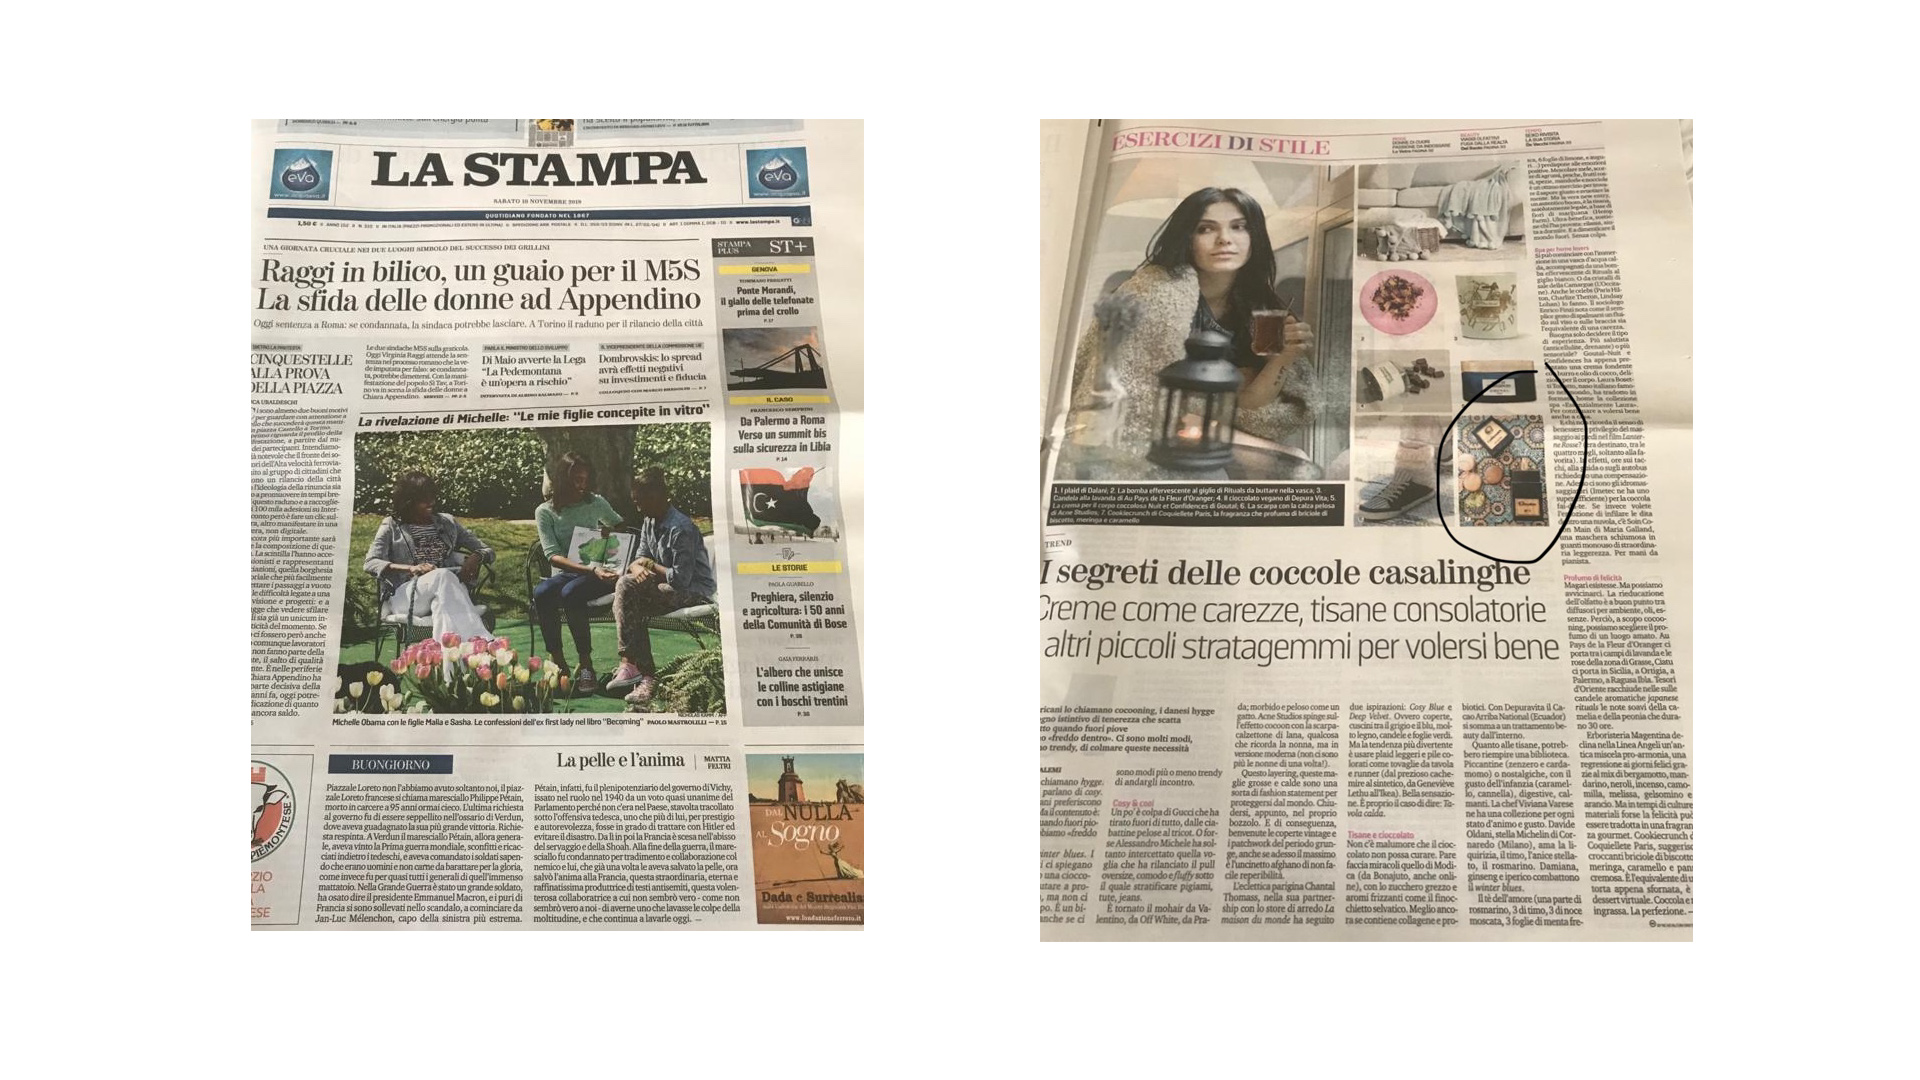 LA STAMPA QUOTIDIANO